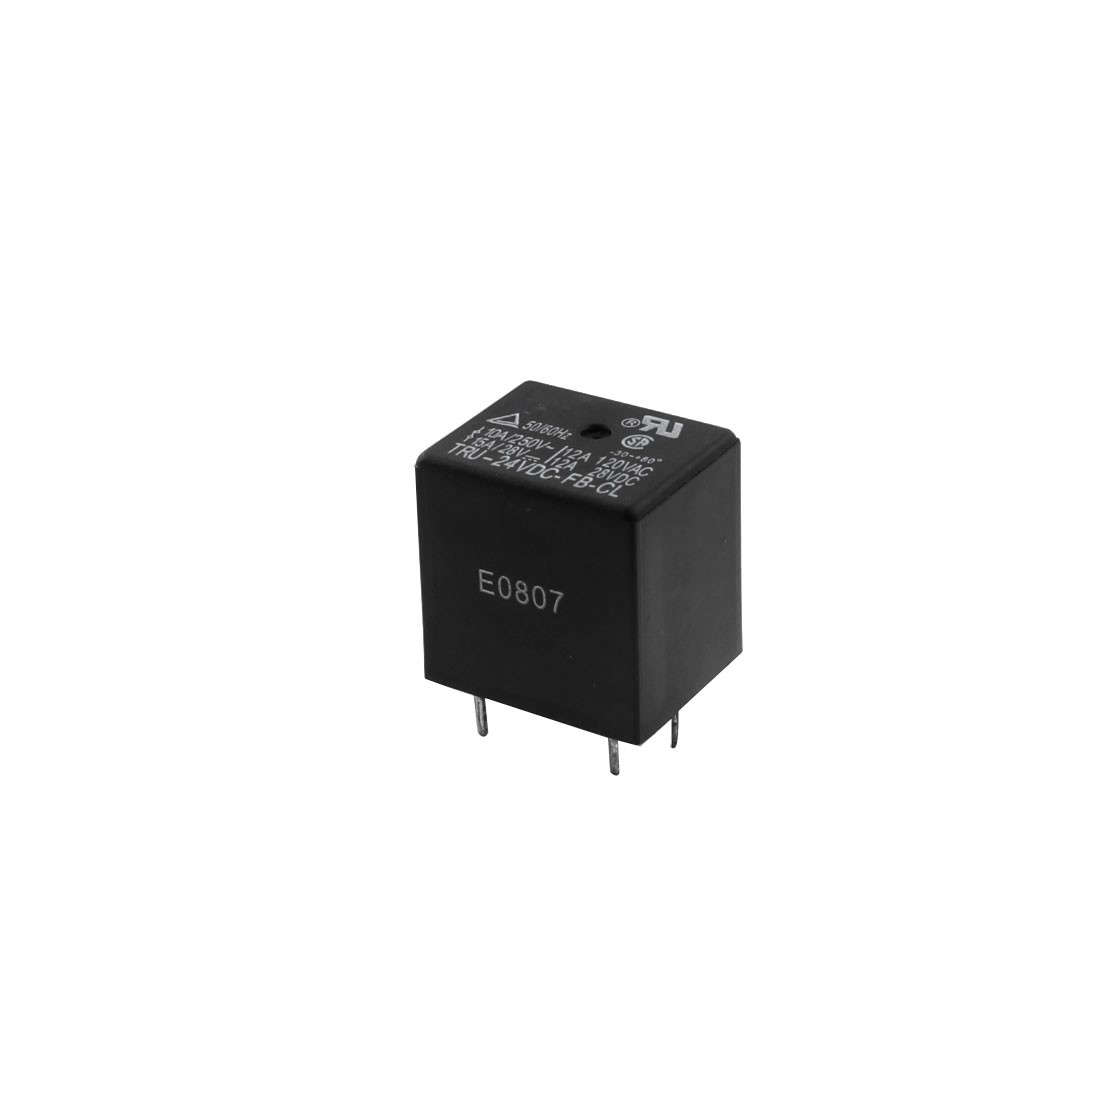 DC24V Coil Voltage 5-Pin SPDT 1NO 1NC Car Auto General Purpose Plastic Housing Power Relay Black